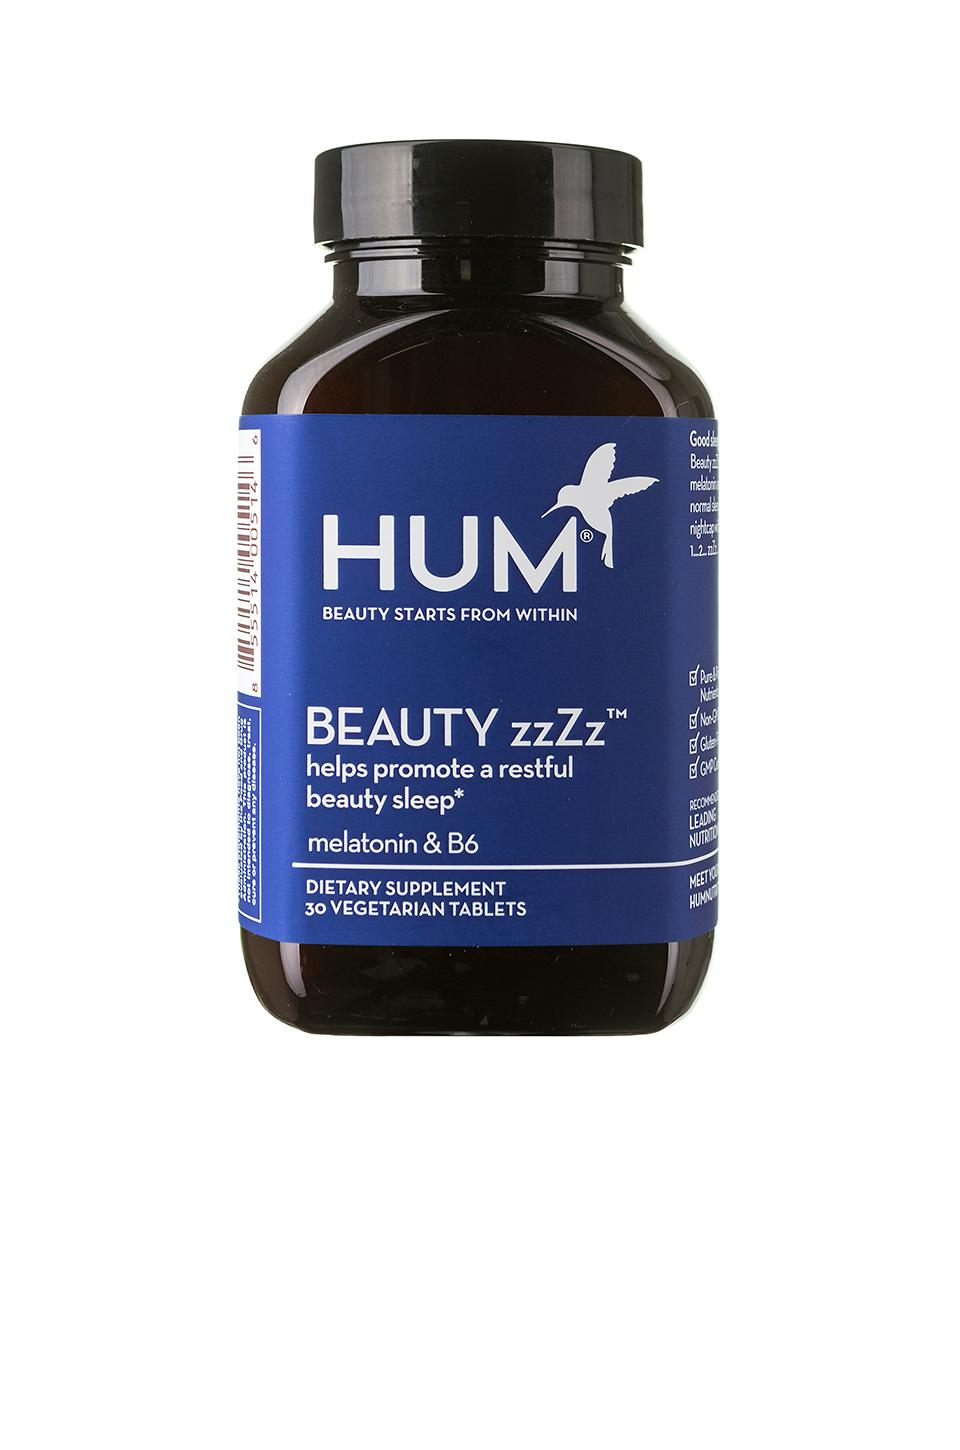 Hum Nutrition Beauty Zzzz Sleep Support Supplement In N,a